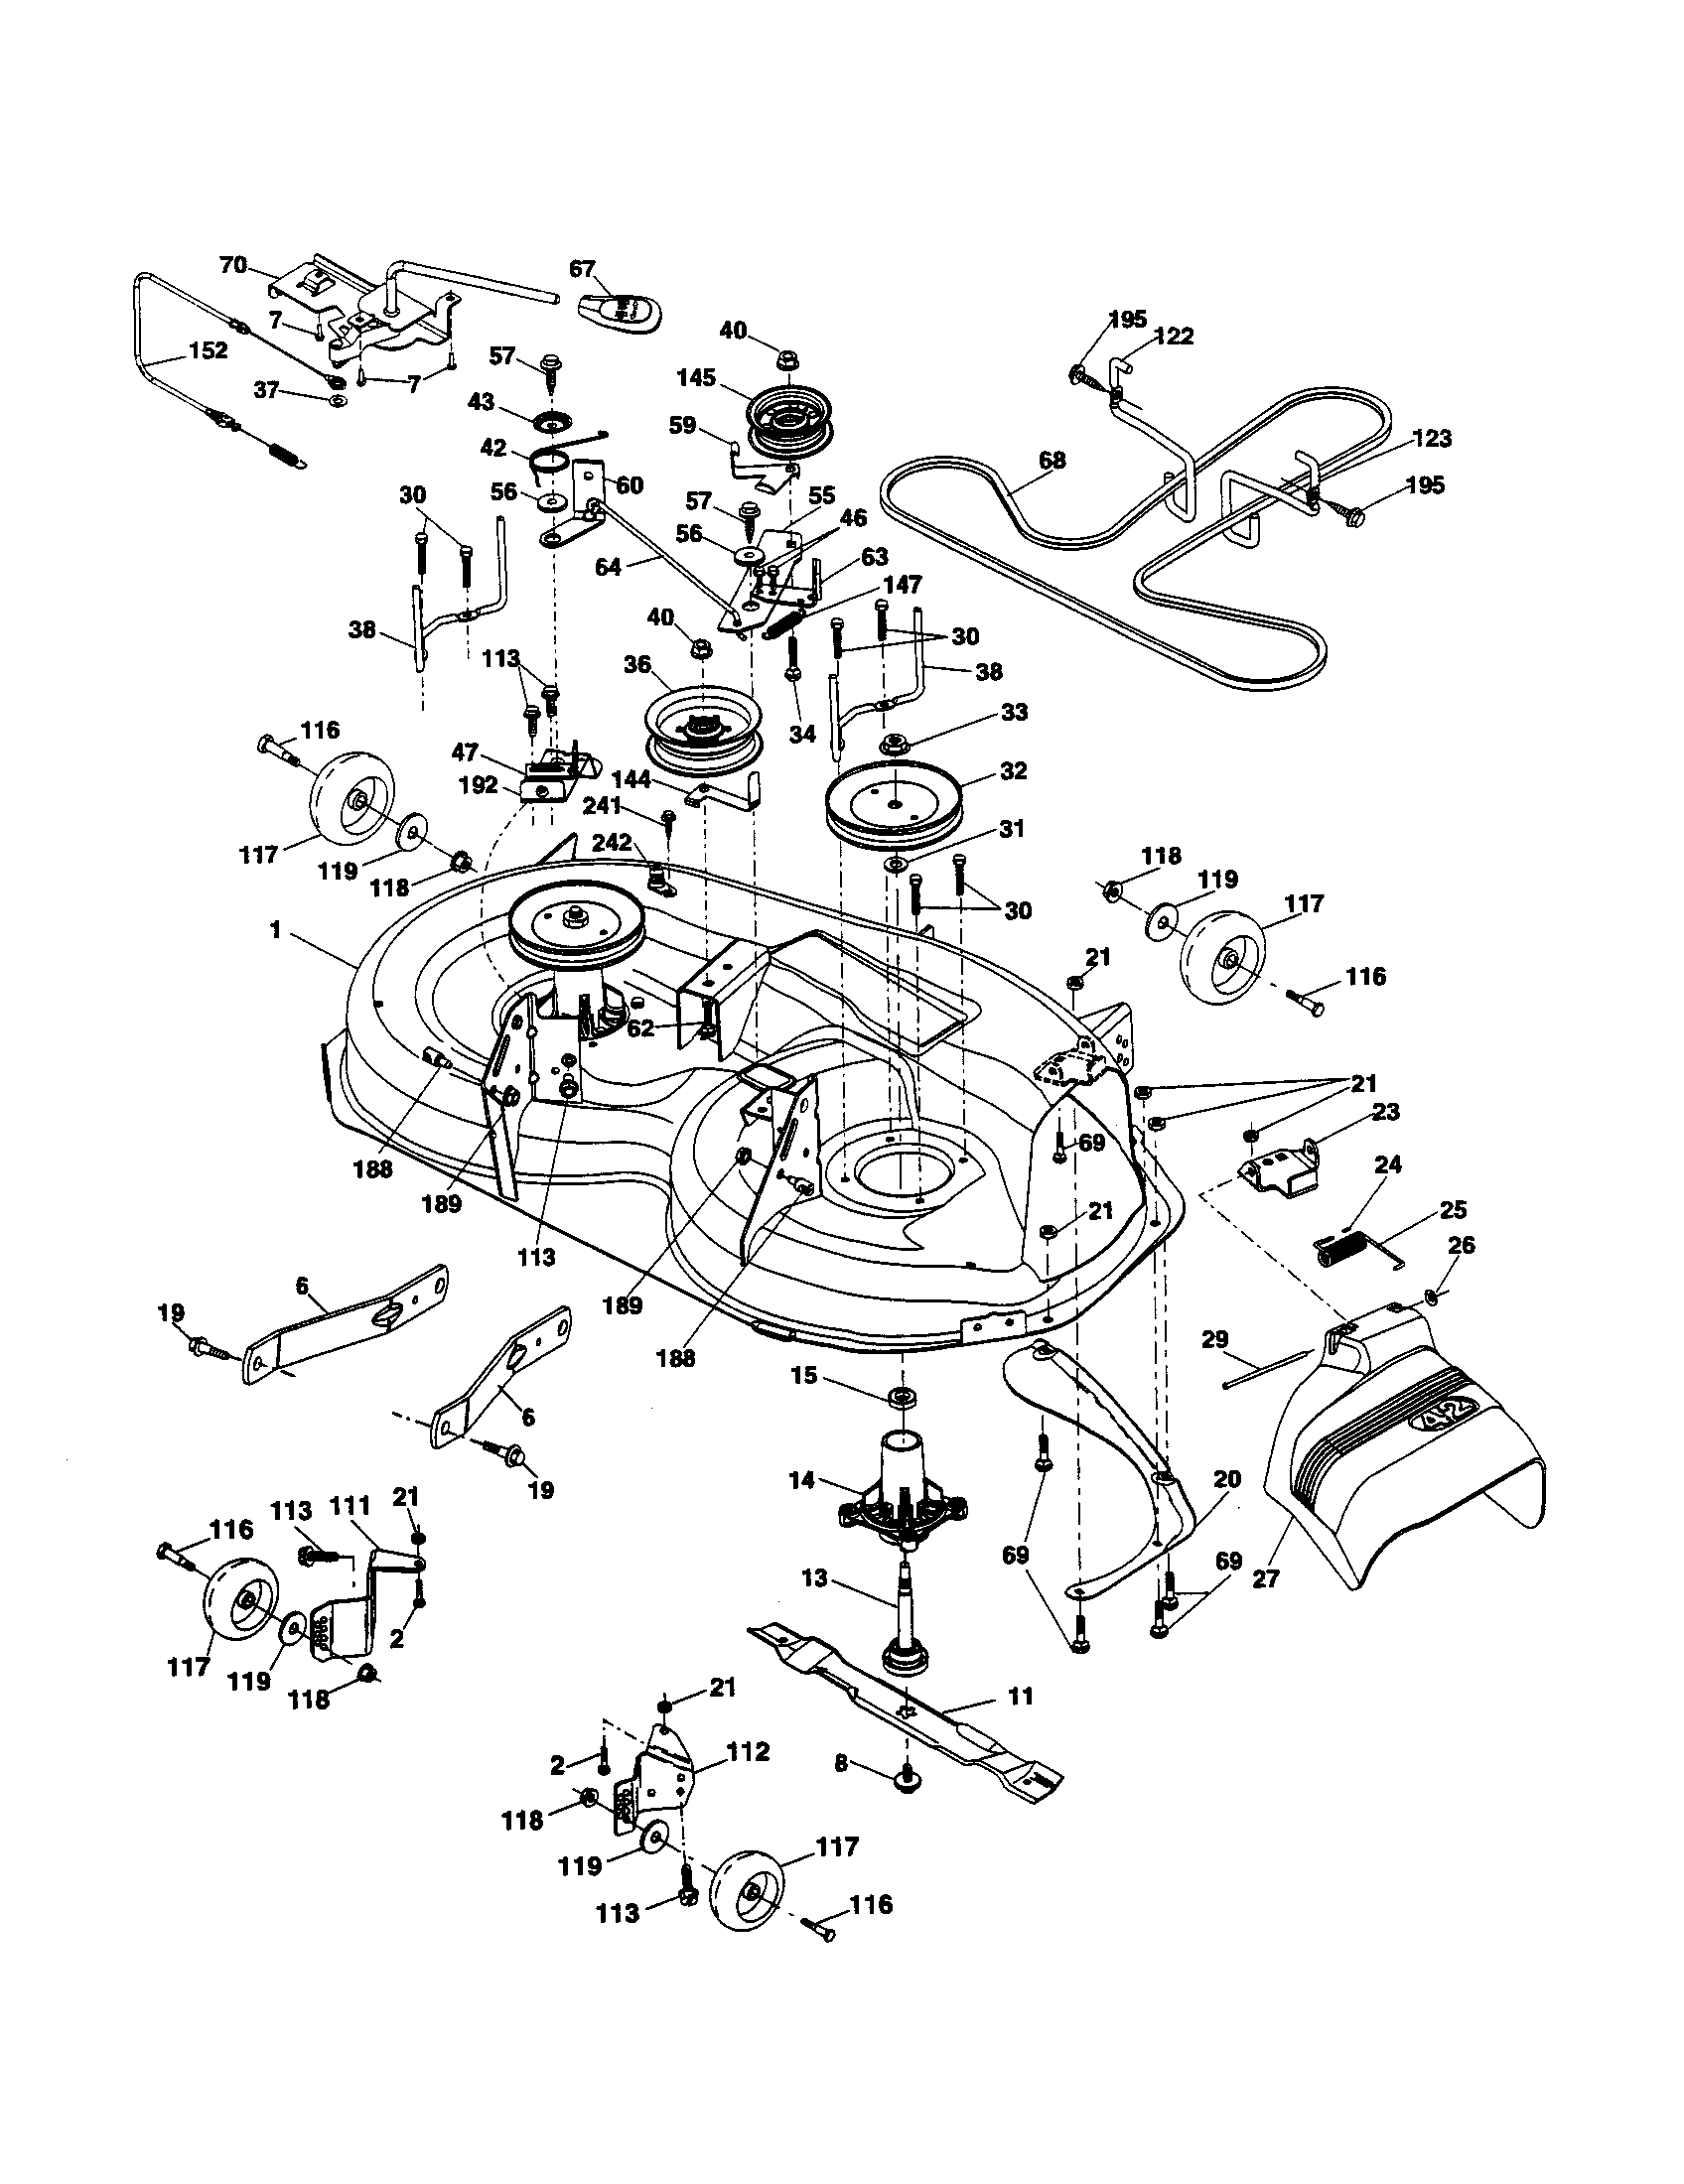 Engine Drive Plate